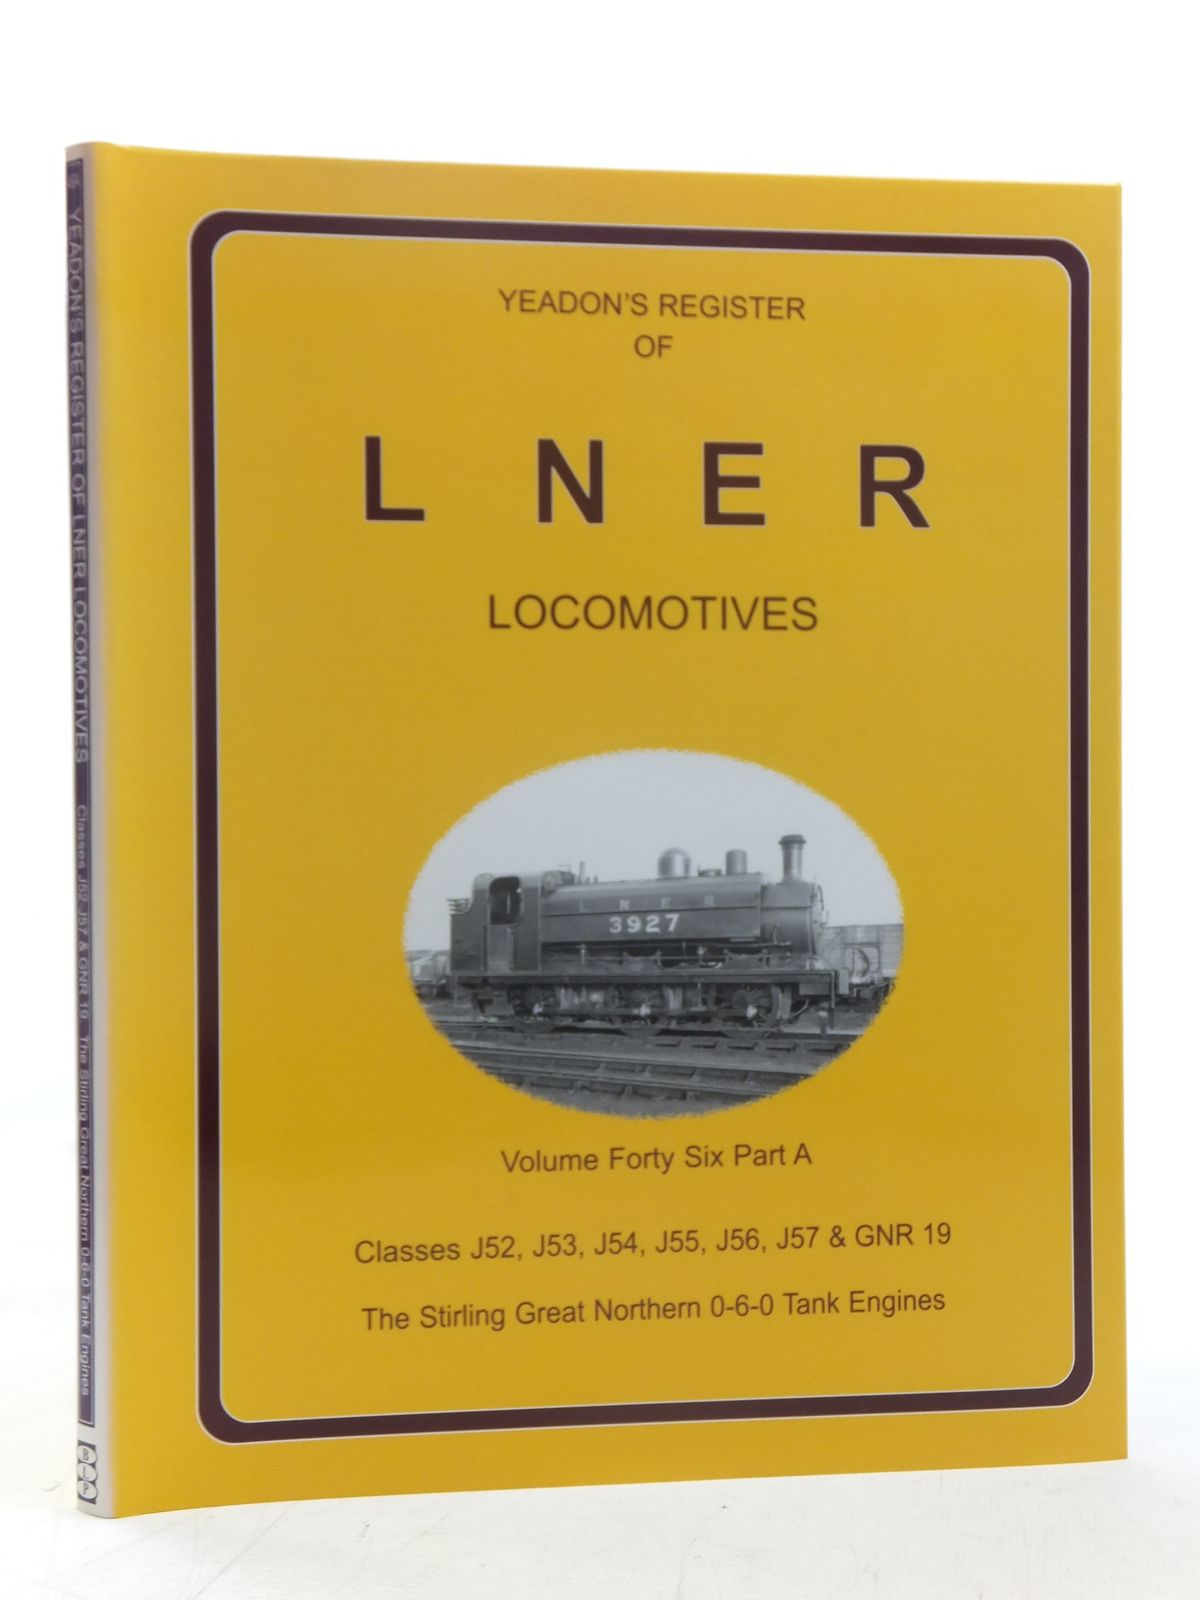 Photo of YEADON'S REGISTER OF LNER LOCOMOTIVES VOLUME FORTY SIX PART A published by Book Law Publications, Challenger Publications (STOCK CODE: 1606912)  for sale by Stella & Rose's Books